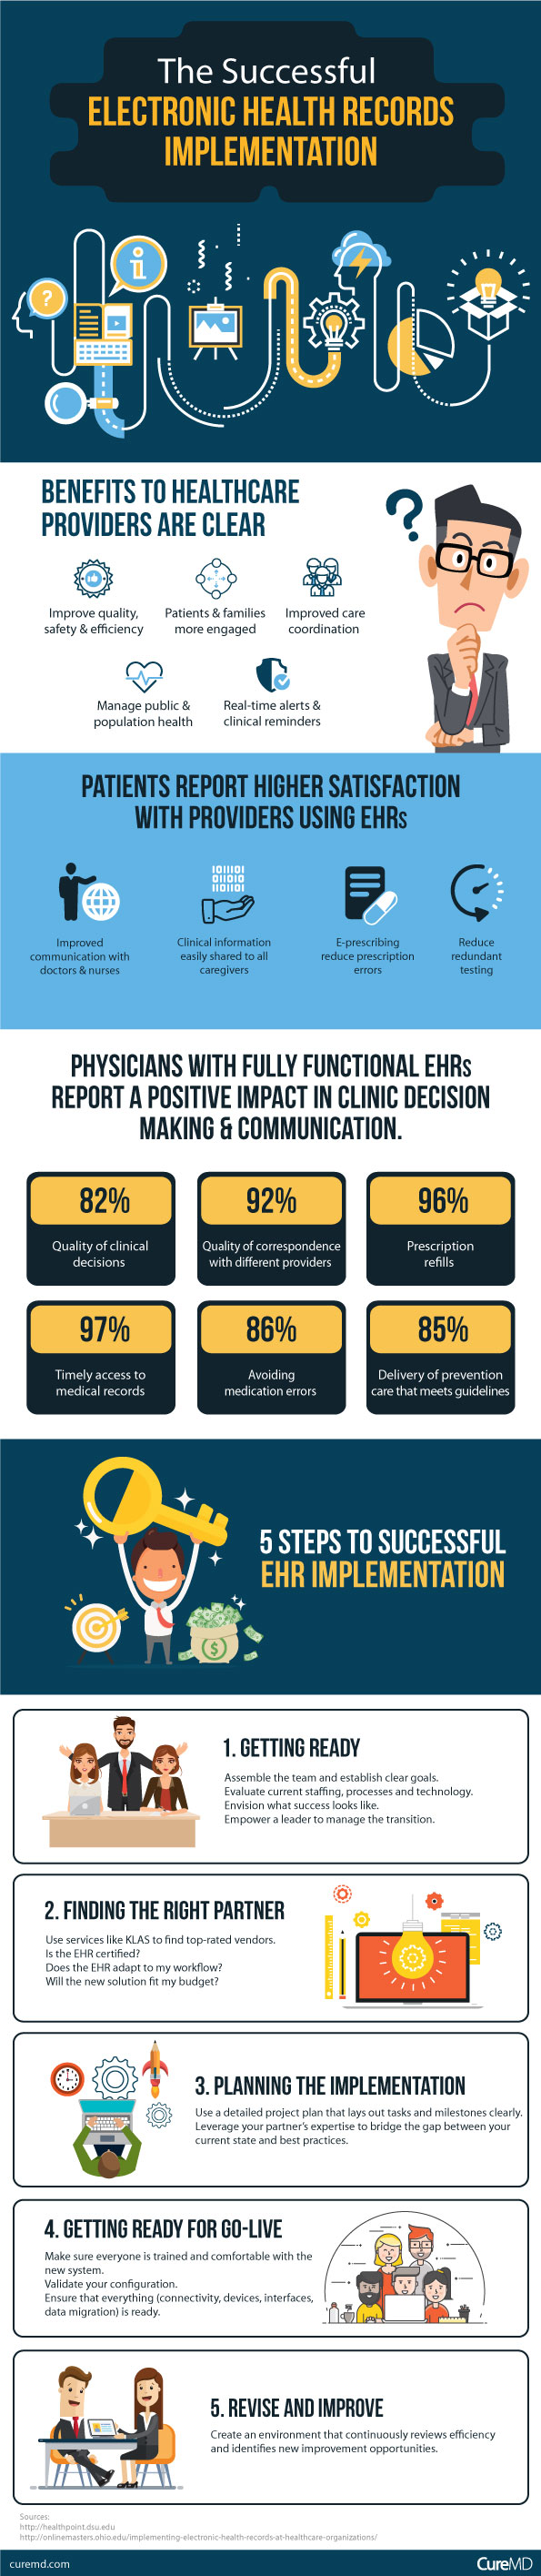 The Successful Electronic Health Records Implementation